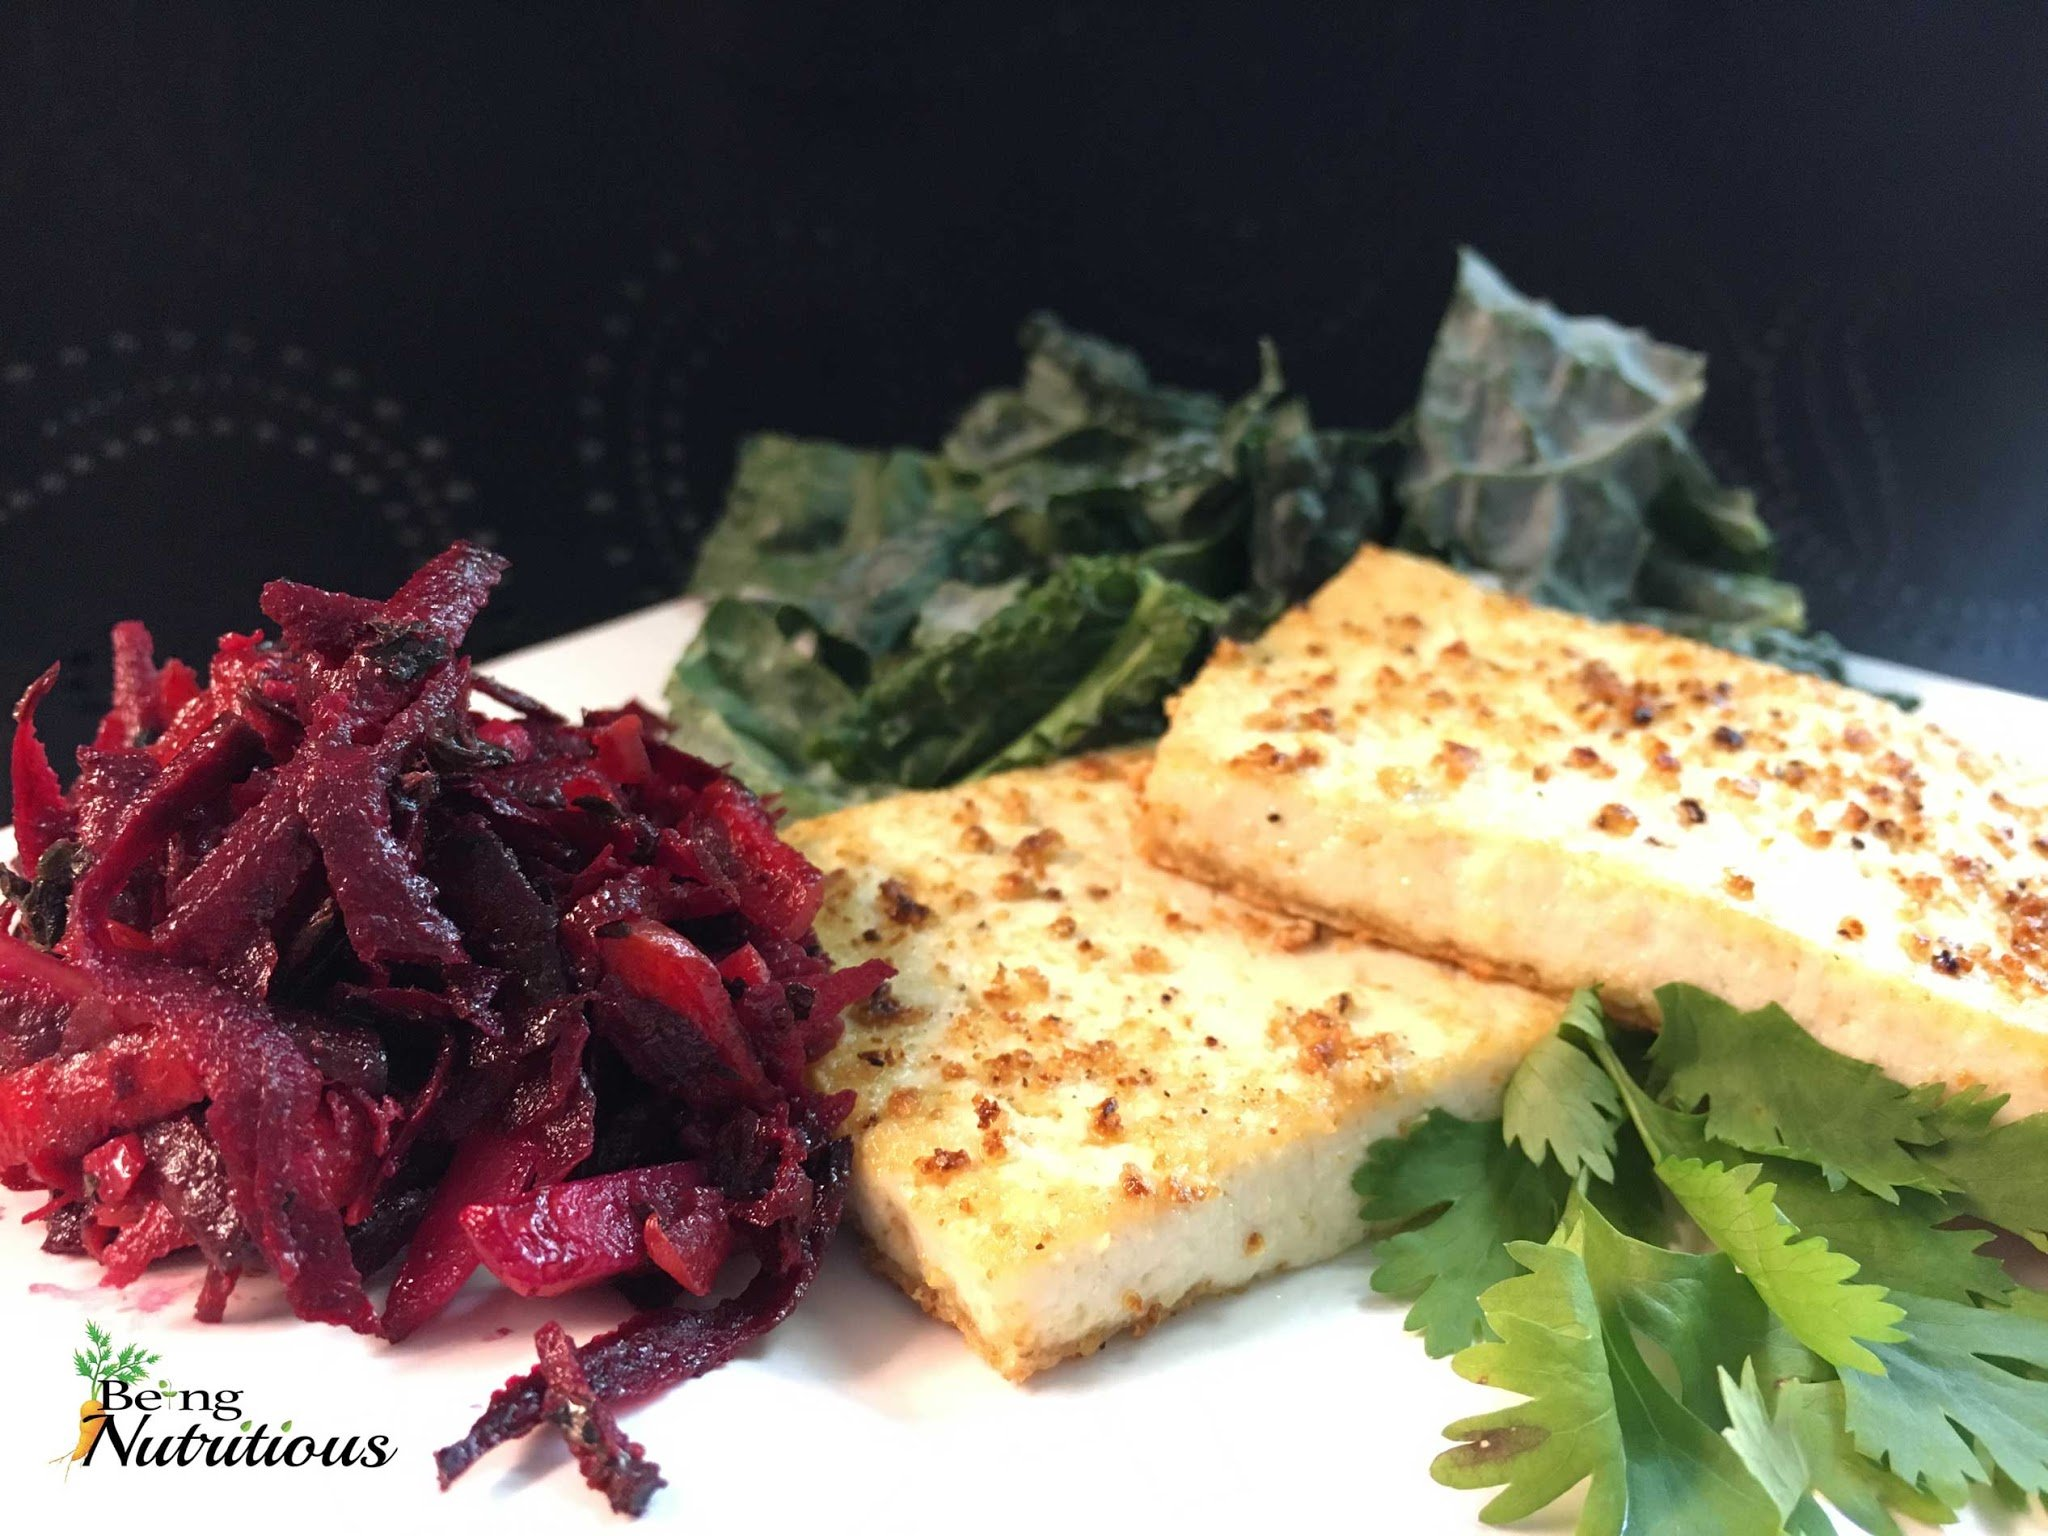 Lemon Pepper Tofu Fillets with sides of shredded beet salad, and a kale salad.